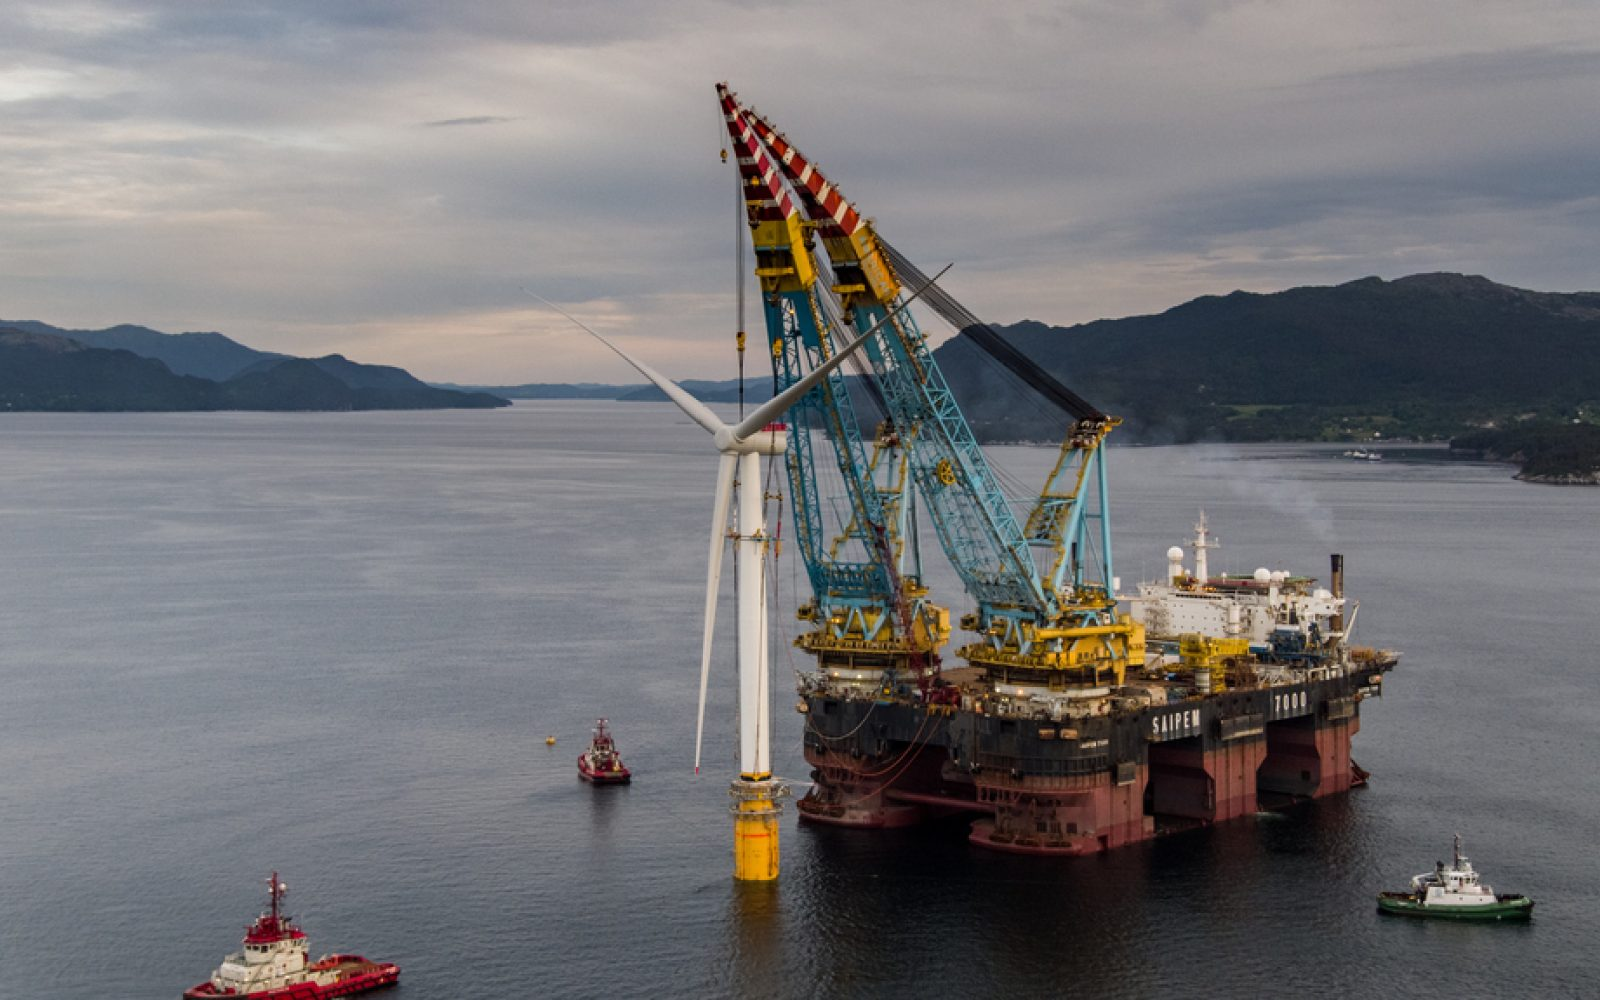 Equinor's offshore floating wind technology being installed off the coast of Scotland. Image: Ørjan Richardsen/Equinor.